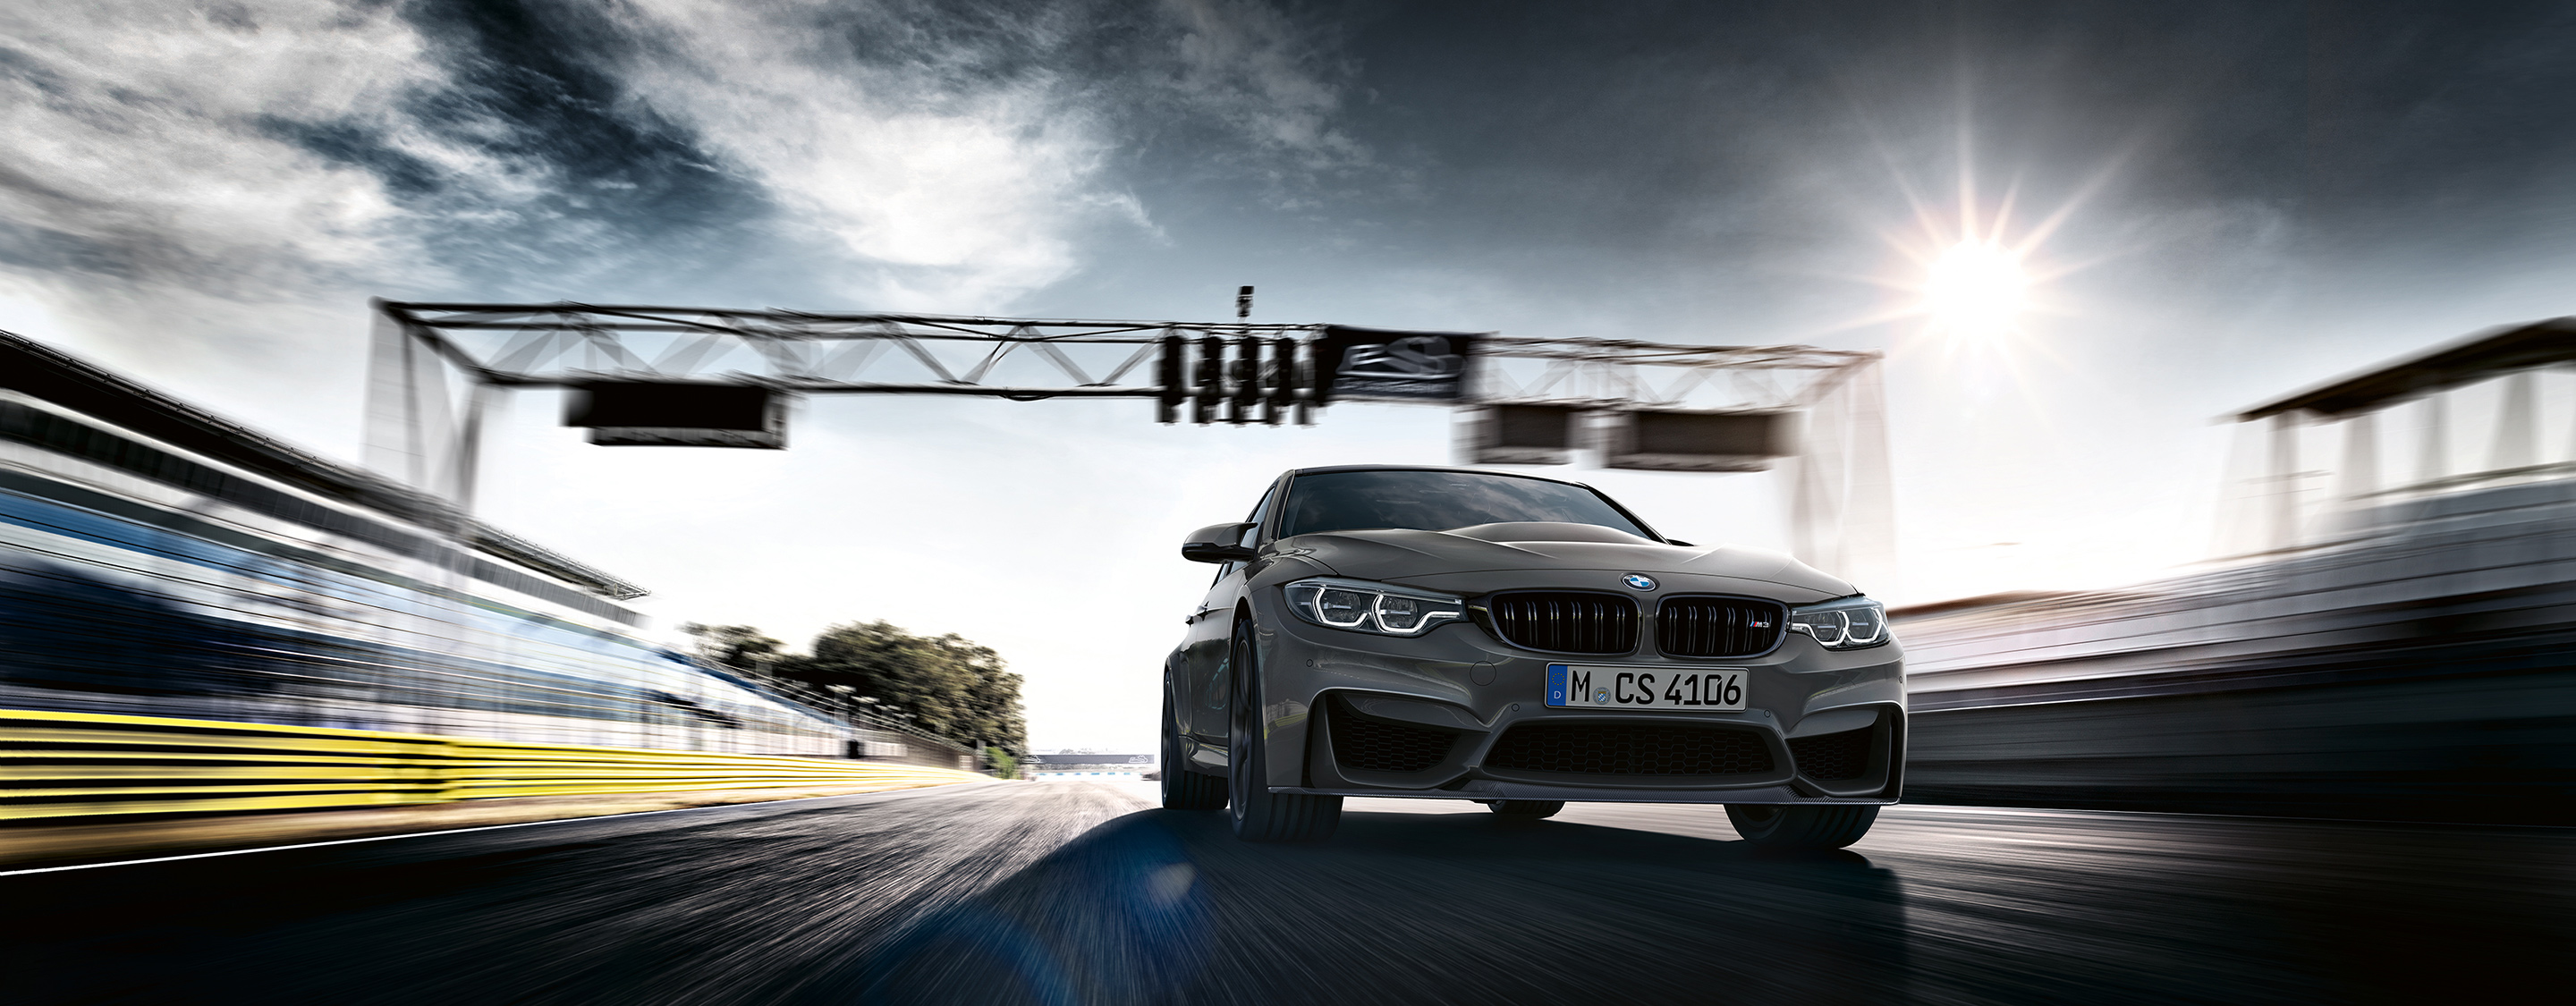 TrackWorthy - BMW M3 CS